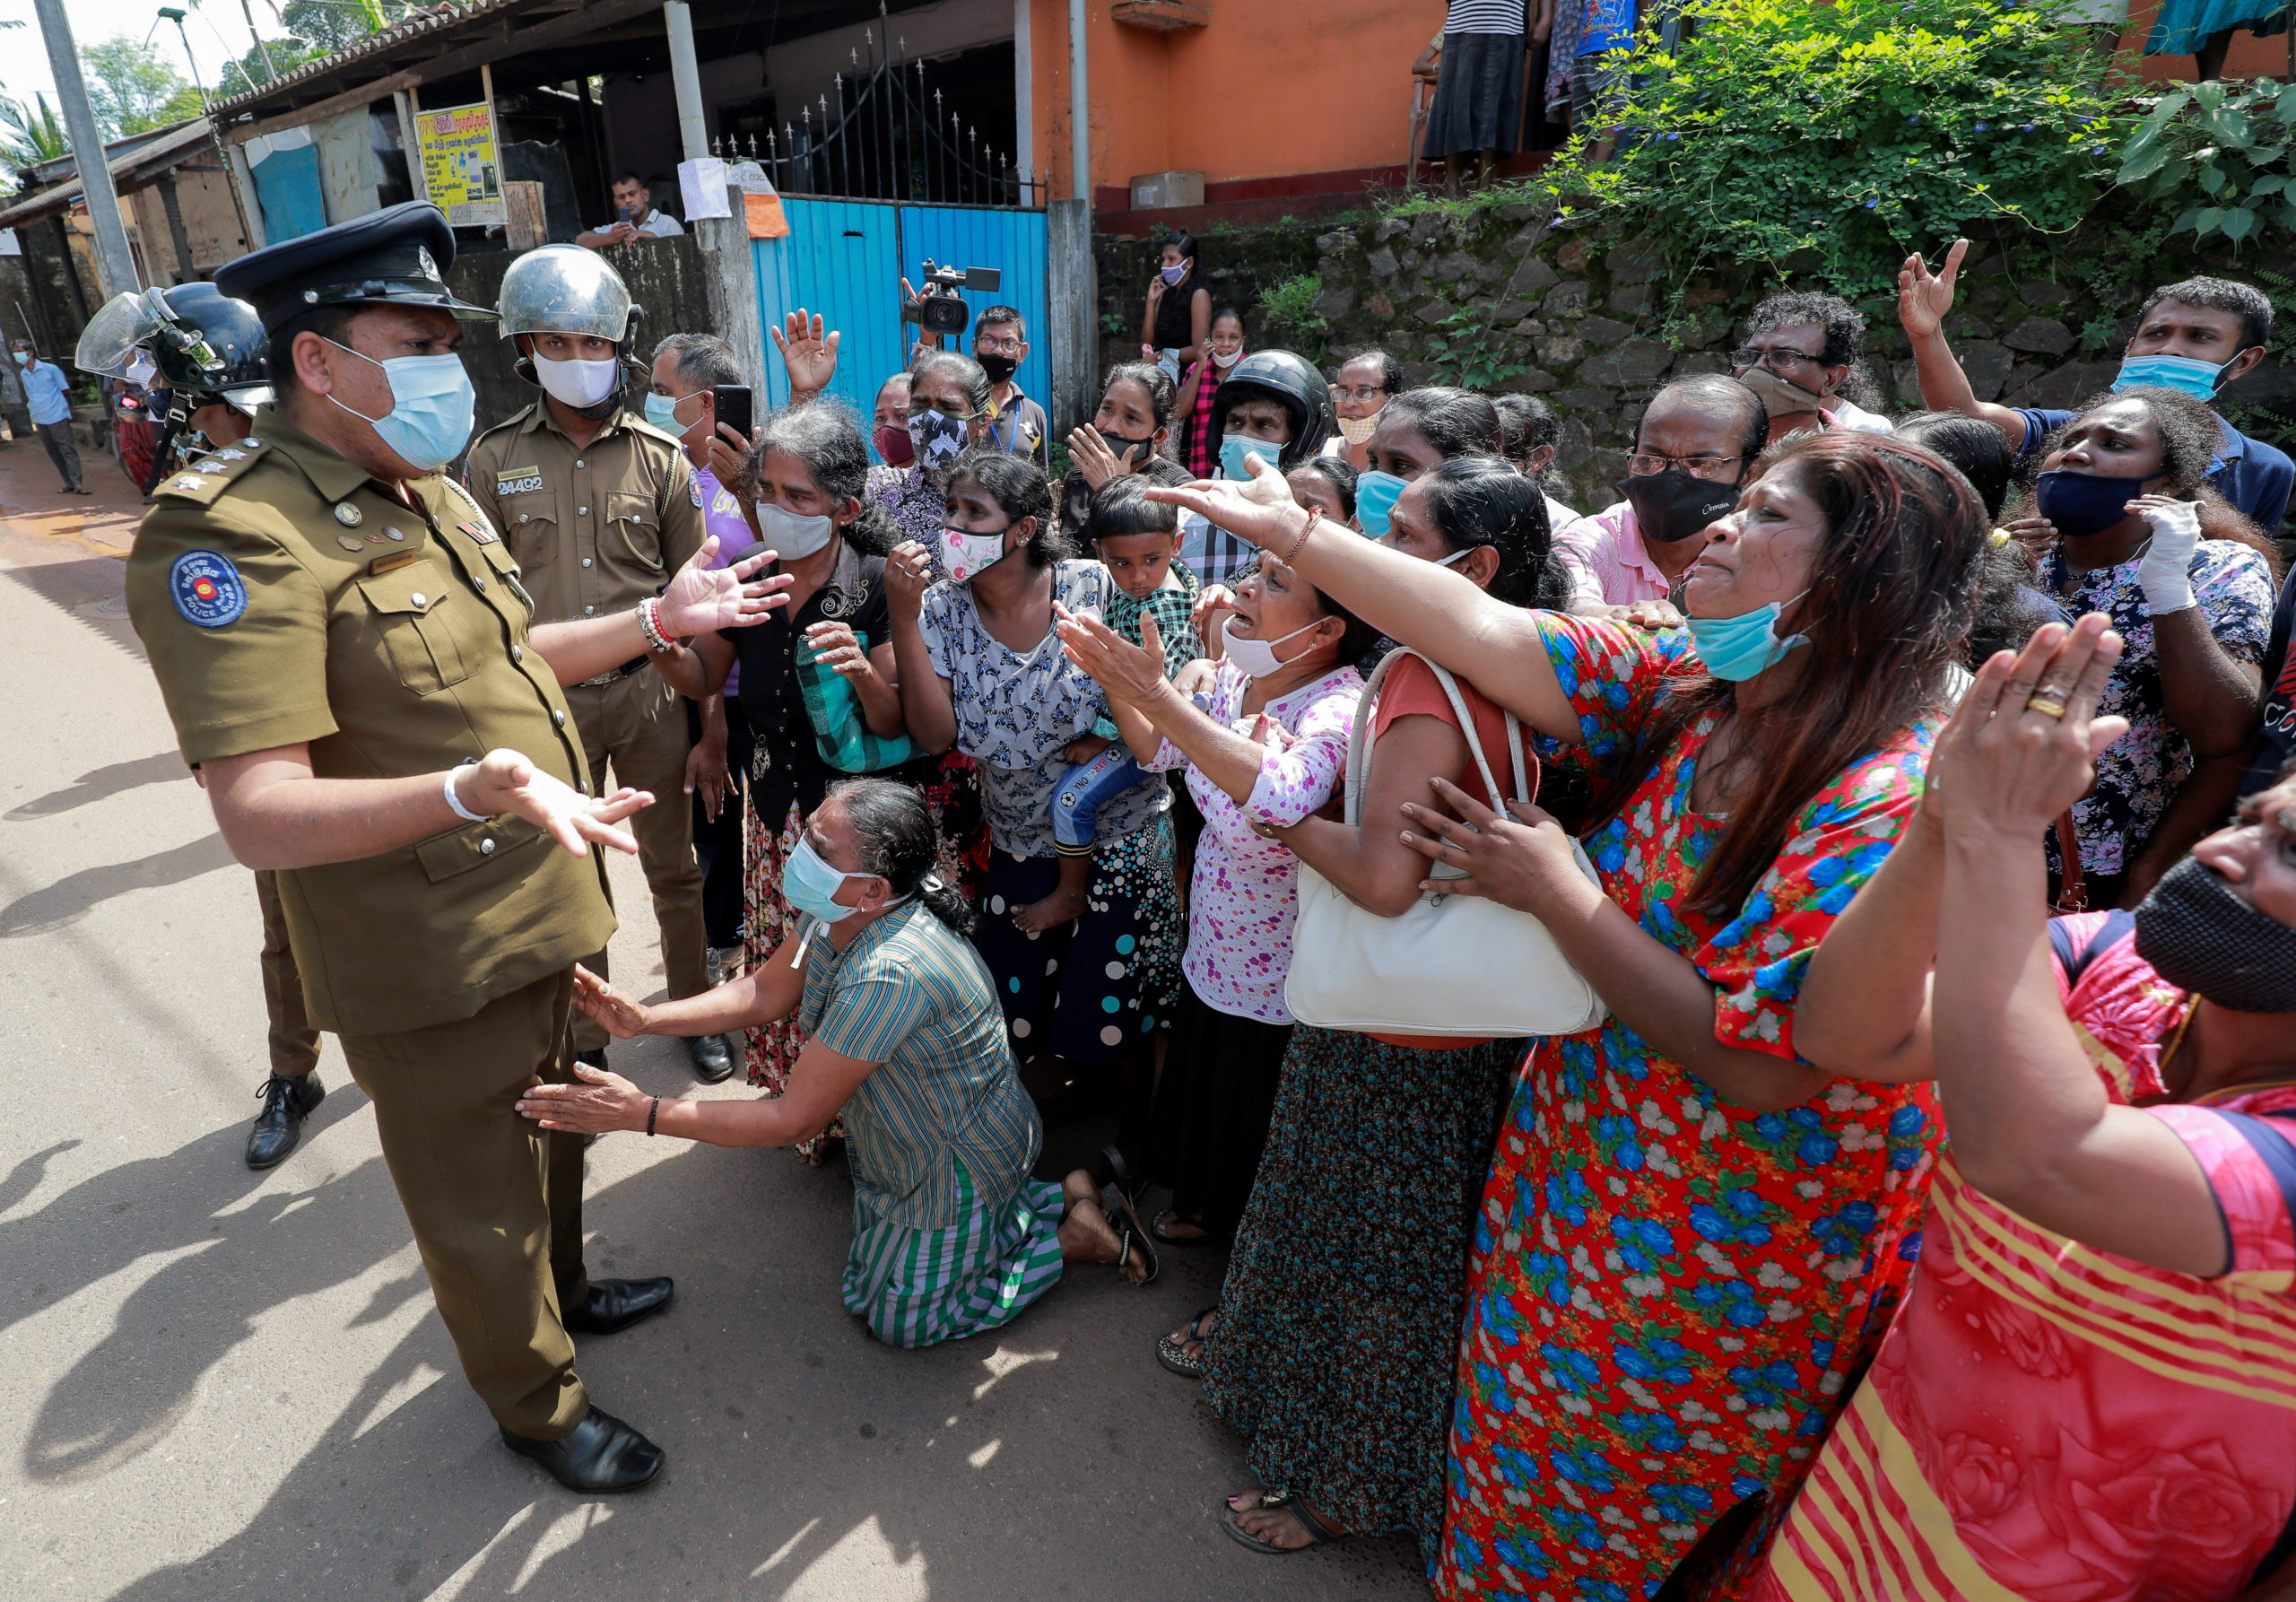 Family members of the prisoners argue with a police officer following unrest at Mahara Prison, on the outskirts of Colombo, Sri Lanka November 30, 2020. REUTERS/Dinuka Liyanawatte